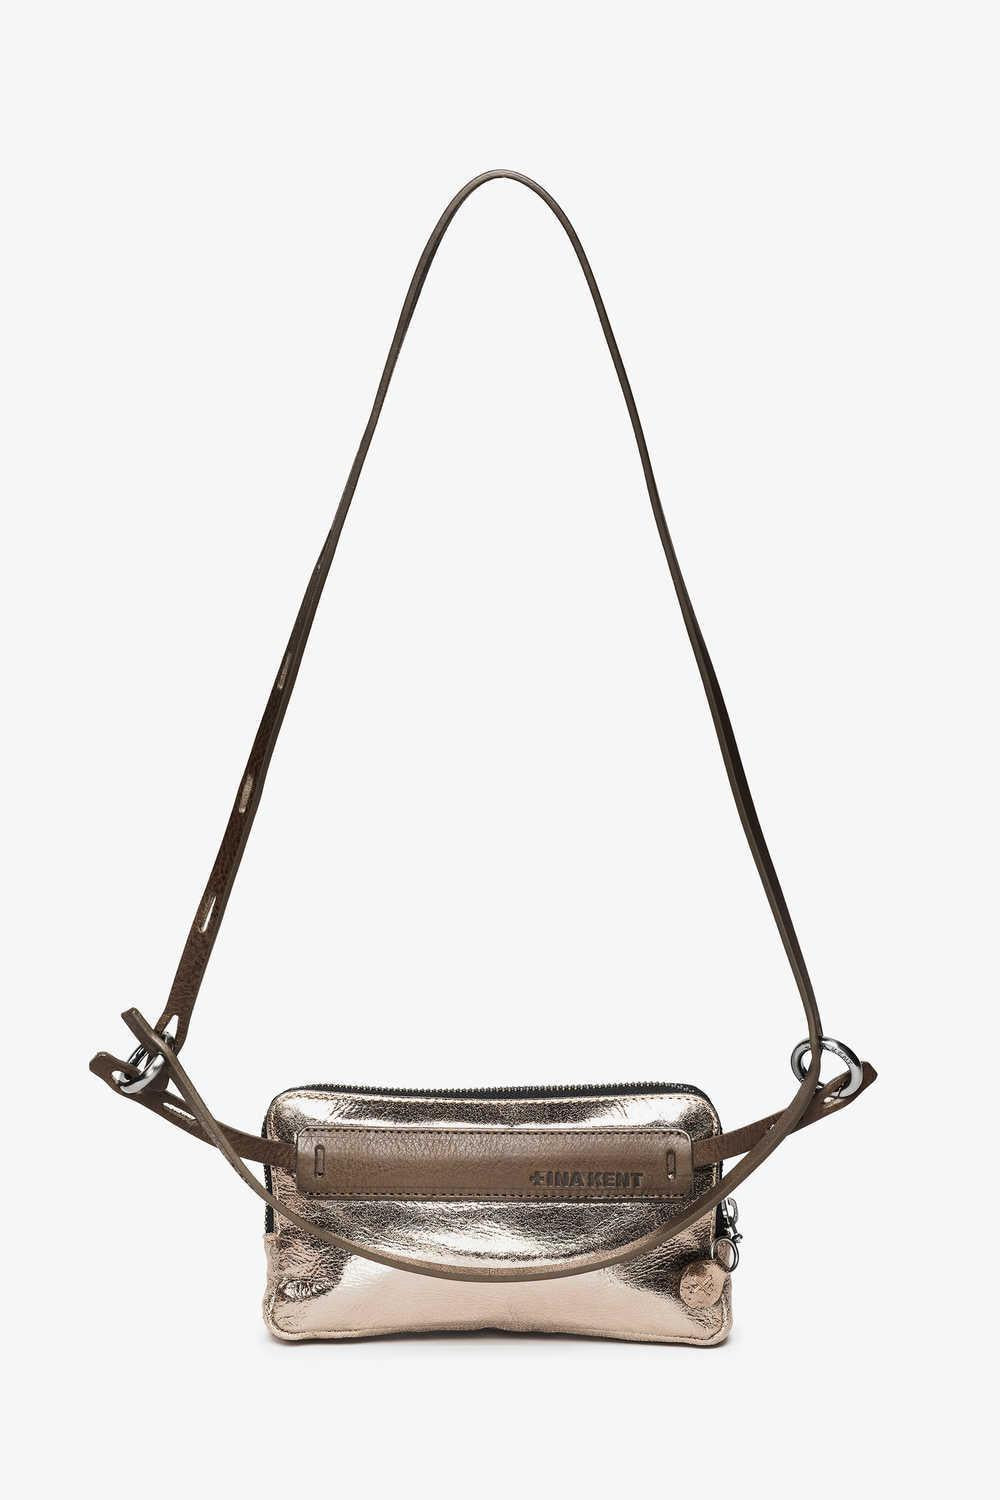 Ina Kent Crackled Anthra Small Handbag